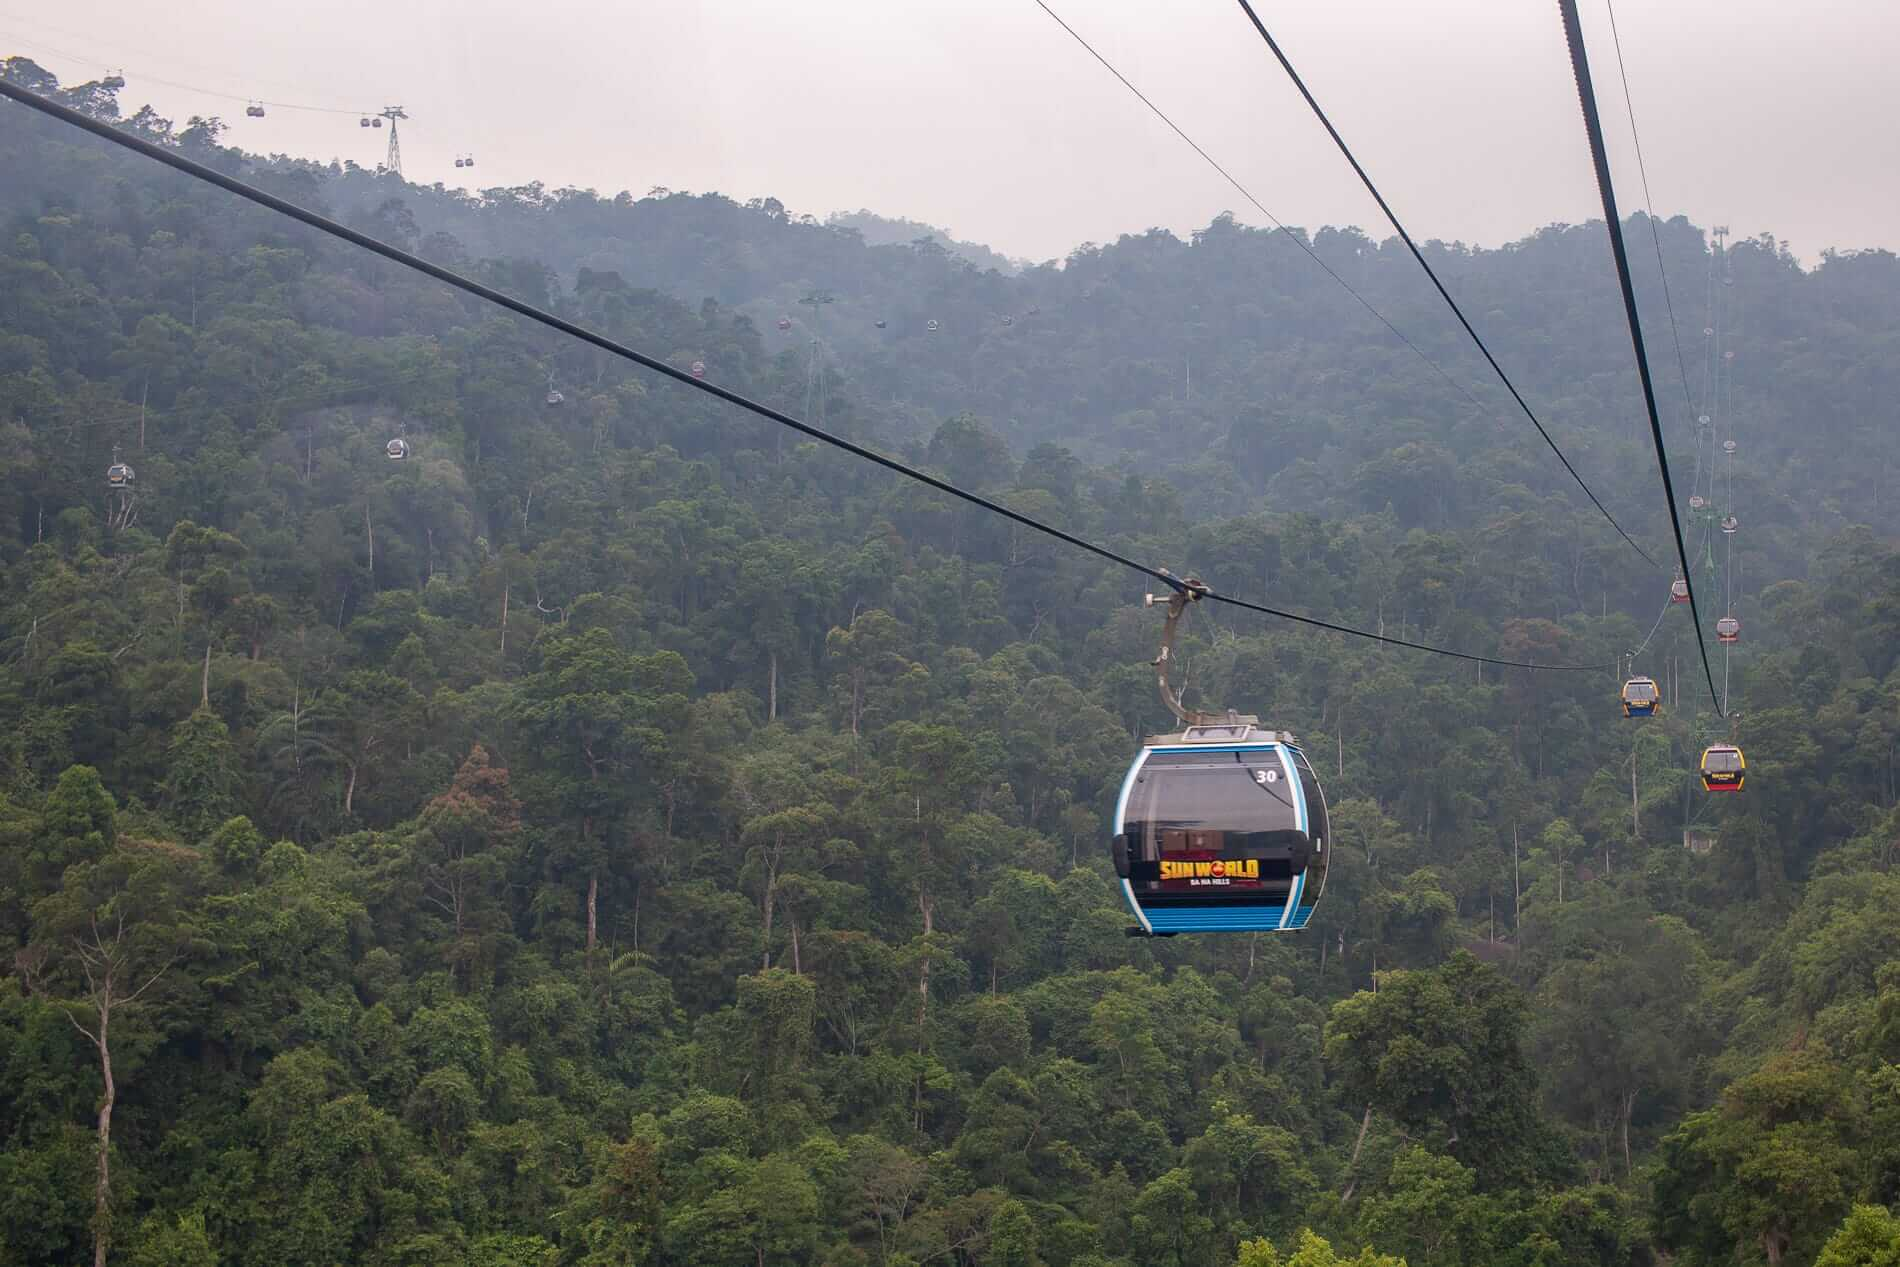 Ba Na hills cable car as it passes the hill